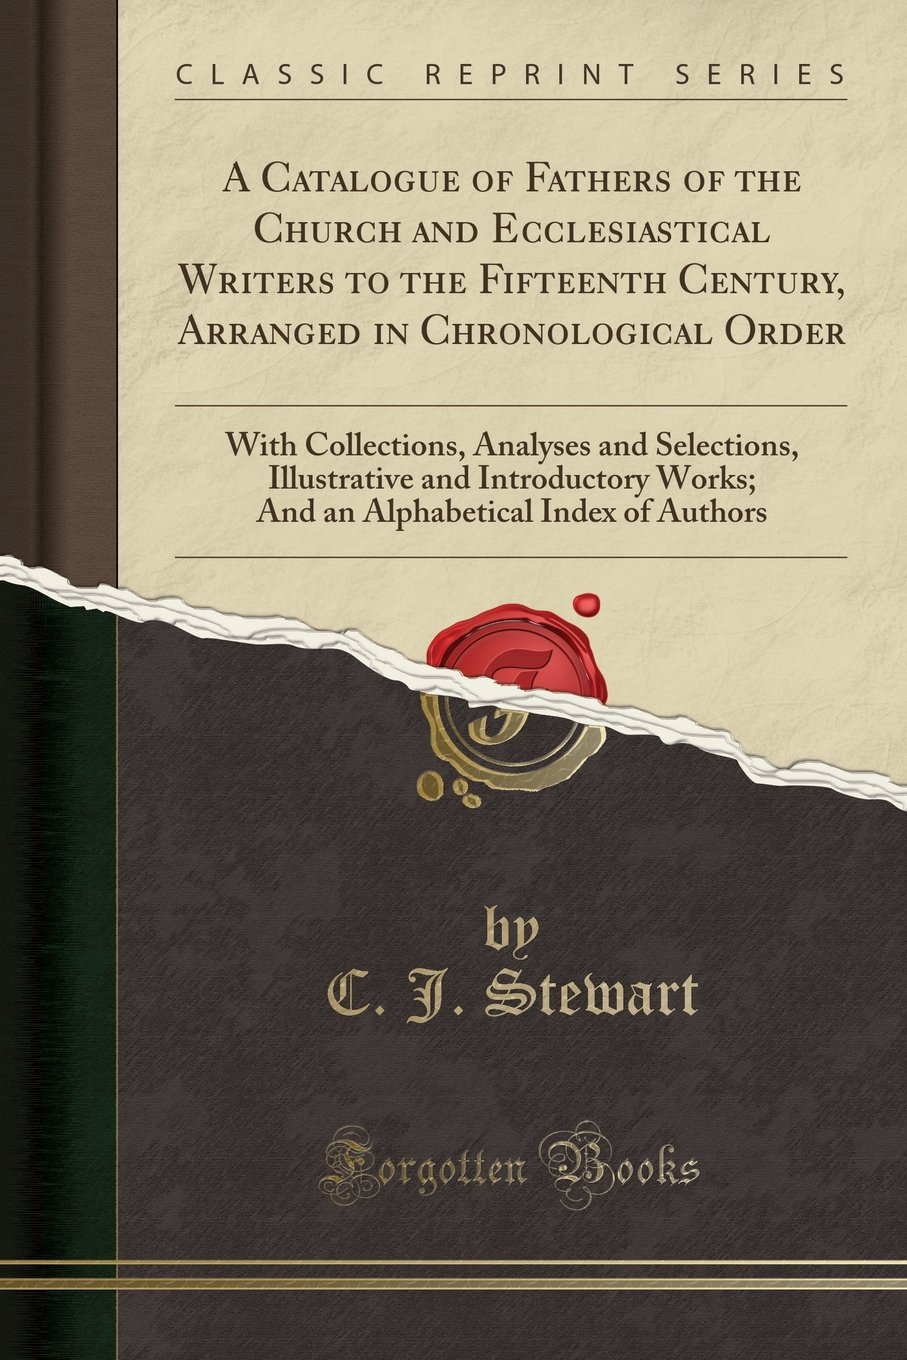 Download A Catalogue of Fathers of the Church and Ecclesiastical Writers to the Fifteenth Century, Arranged in Chronological Order: With Collections, Analyses ... Works; And an Alphabetical Index of Authors ebook